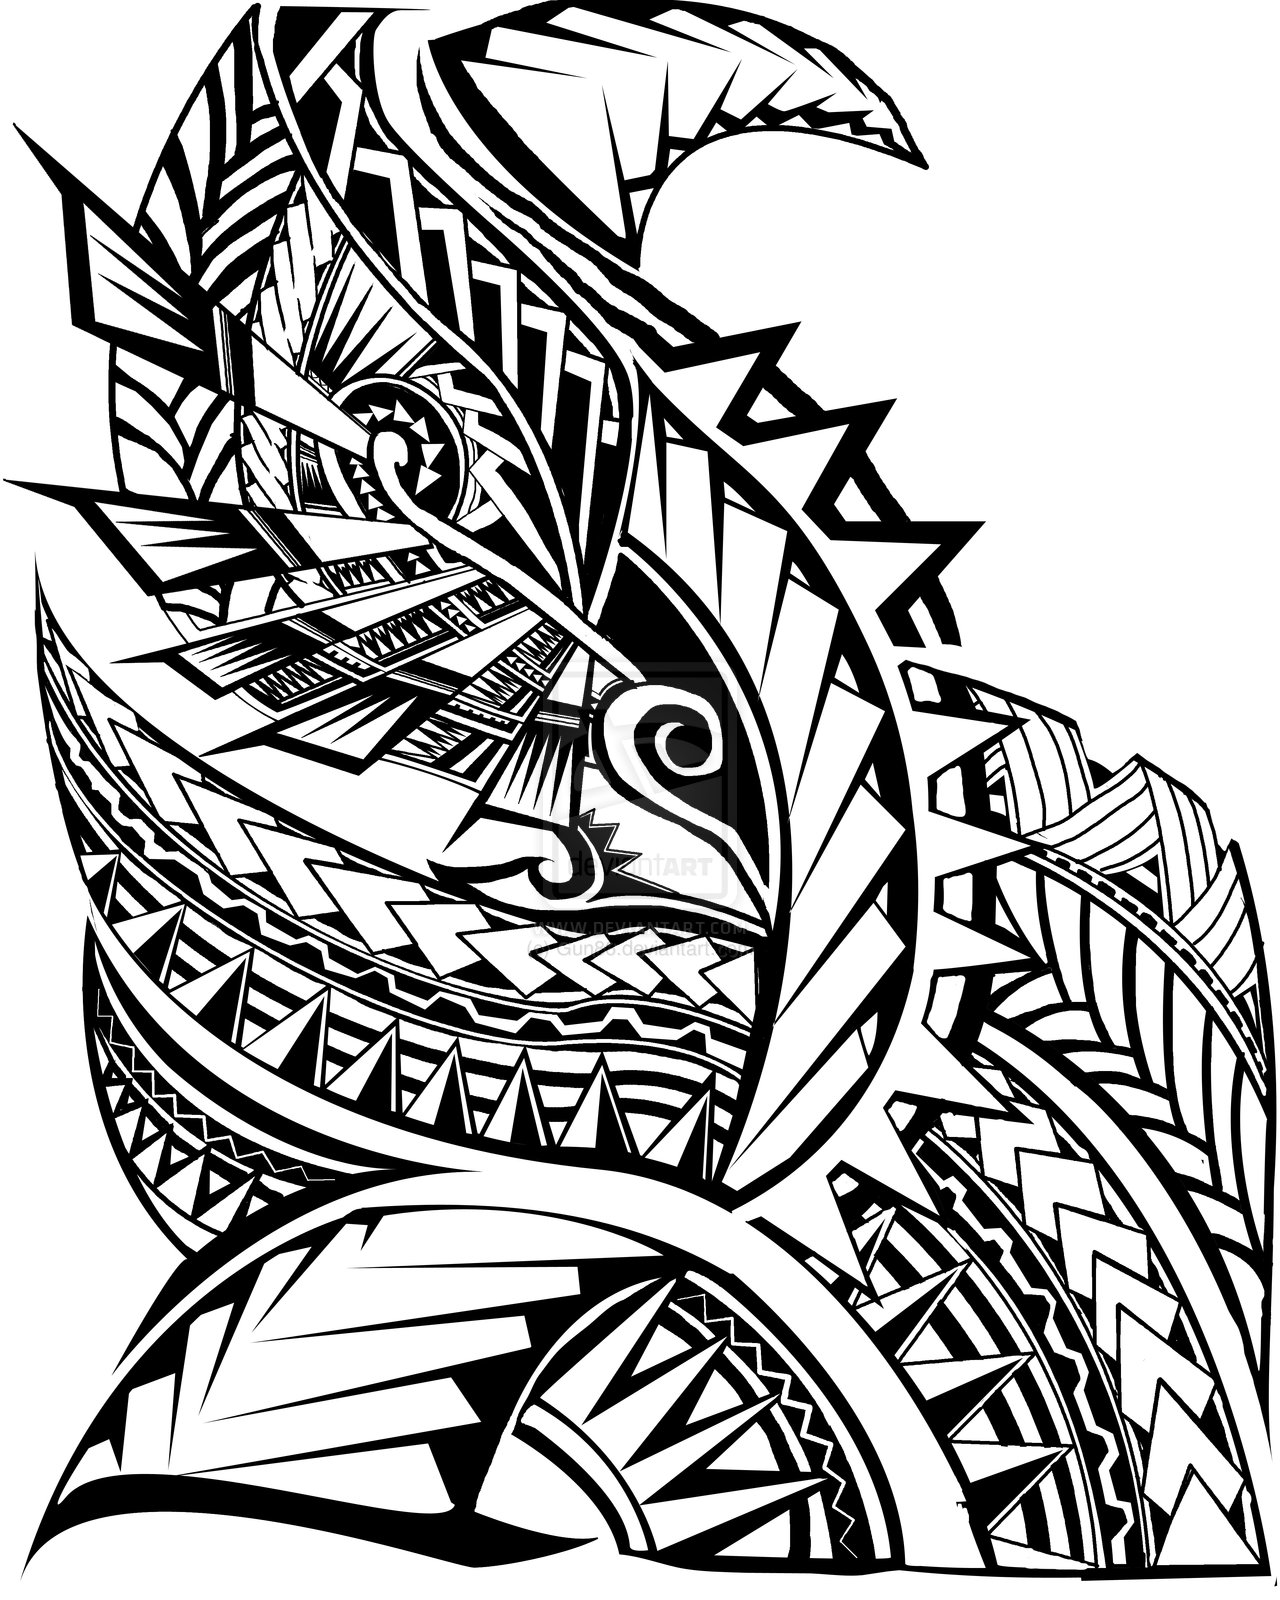 draw easy to tribal tattoos Designs, You For Meaning   Tattoos Samoan Ideas Tattoos and